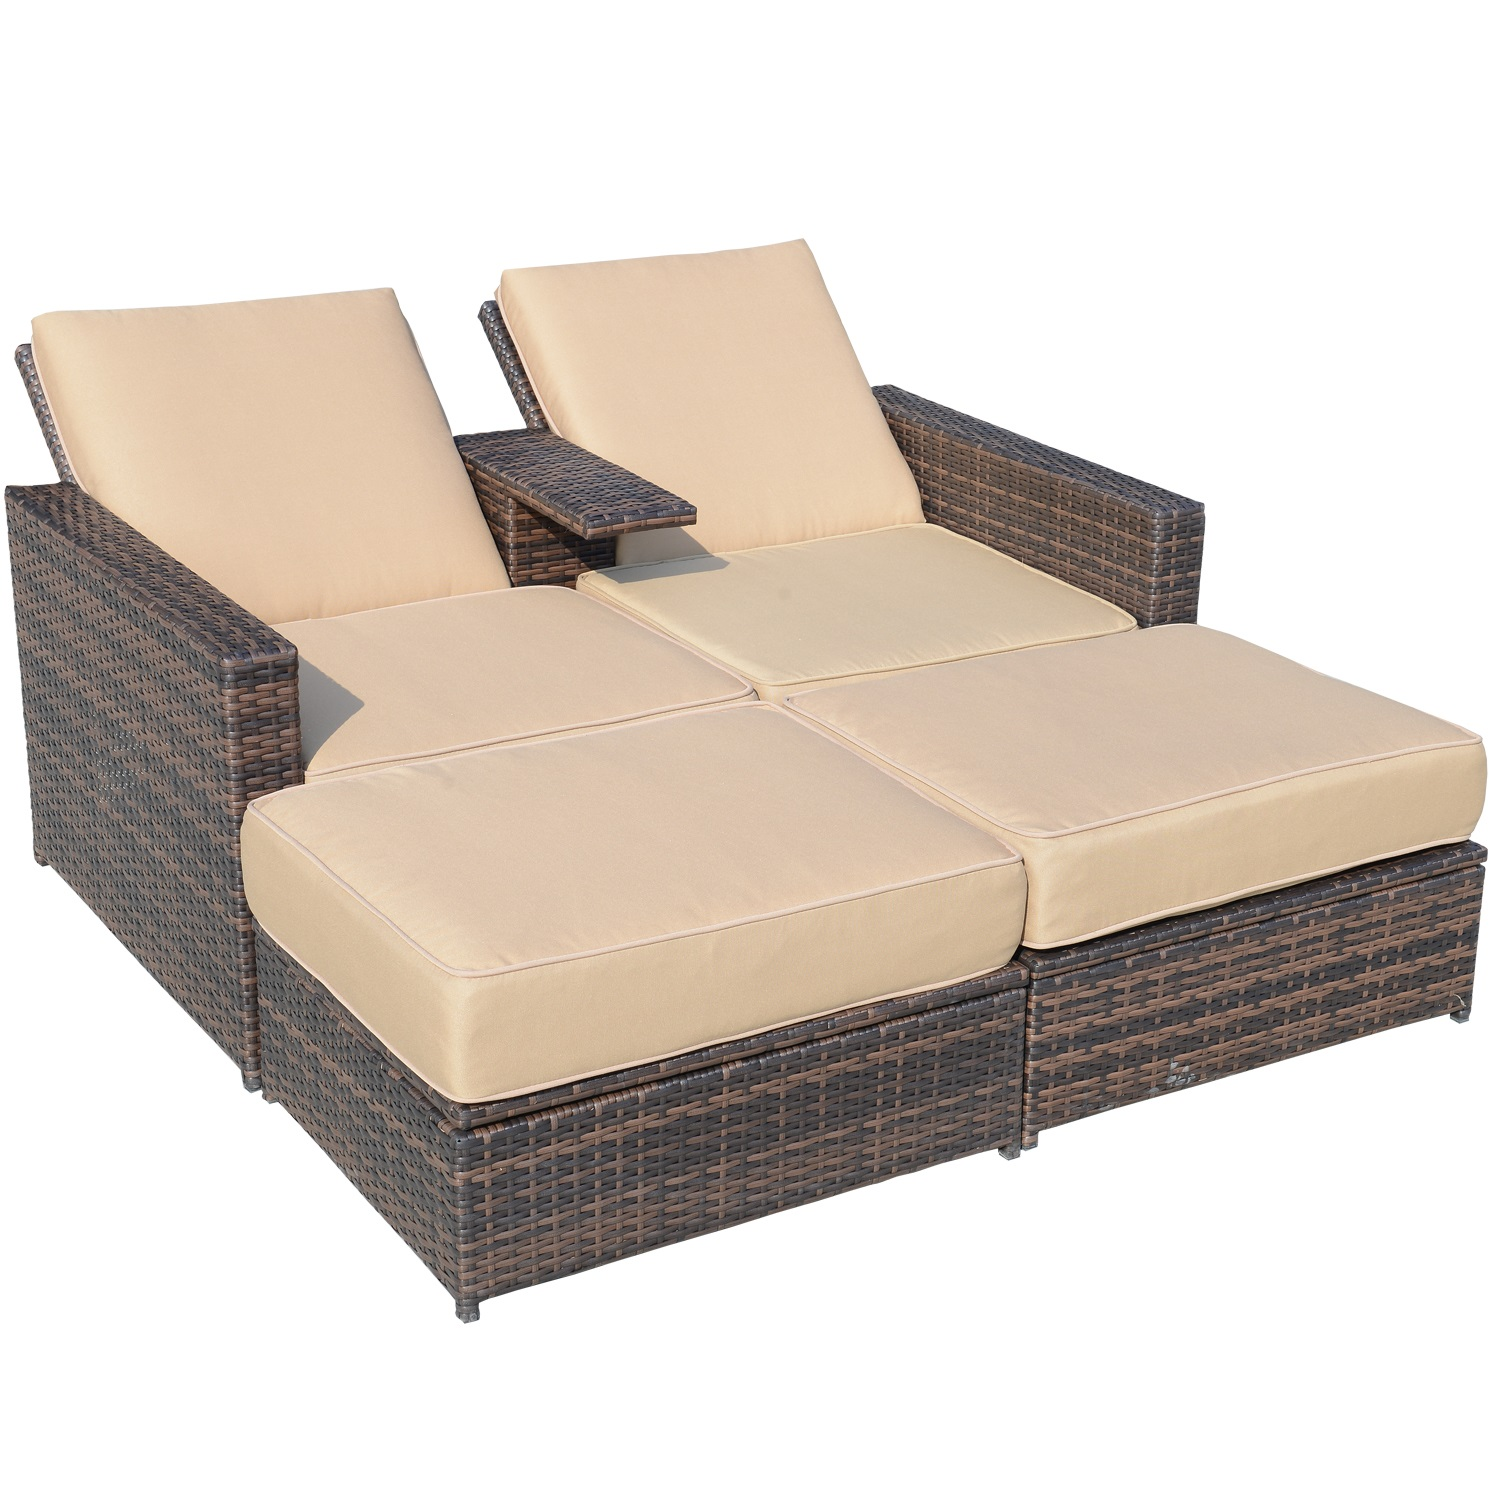 Aosom LLC Outsunny 3 Piece Outdoor PE Rattan Wicker Patio Love Seat Lounge Chair Set with Cushions